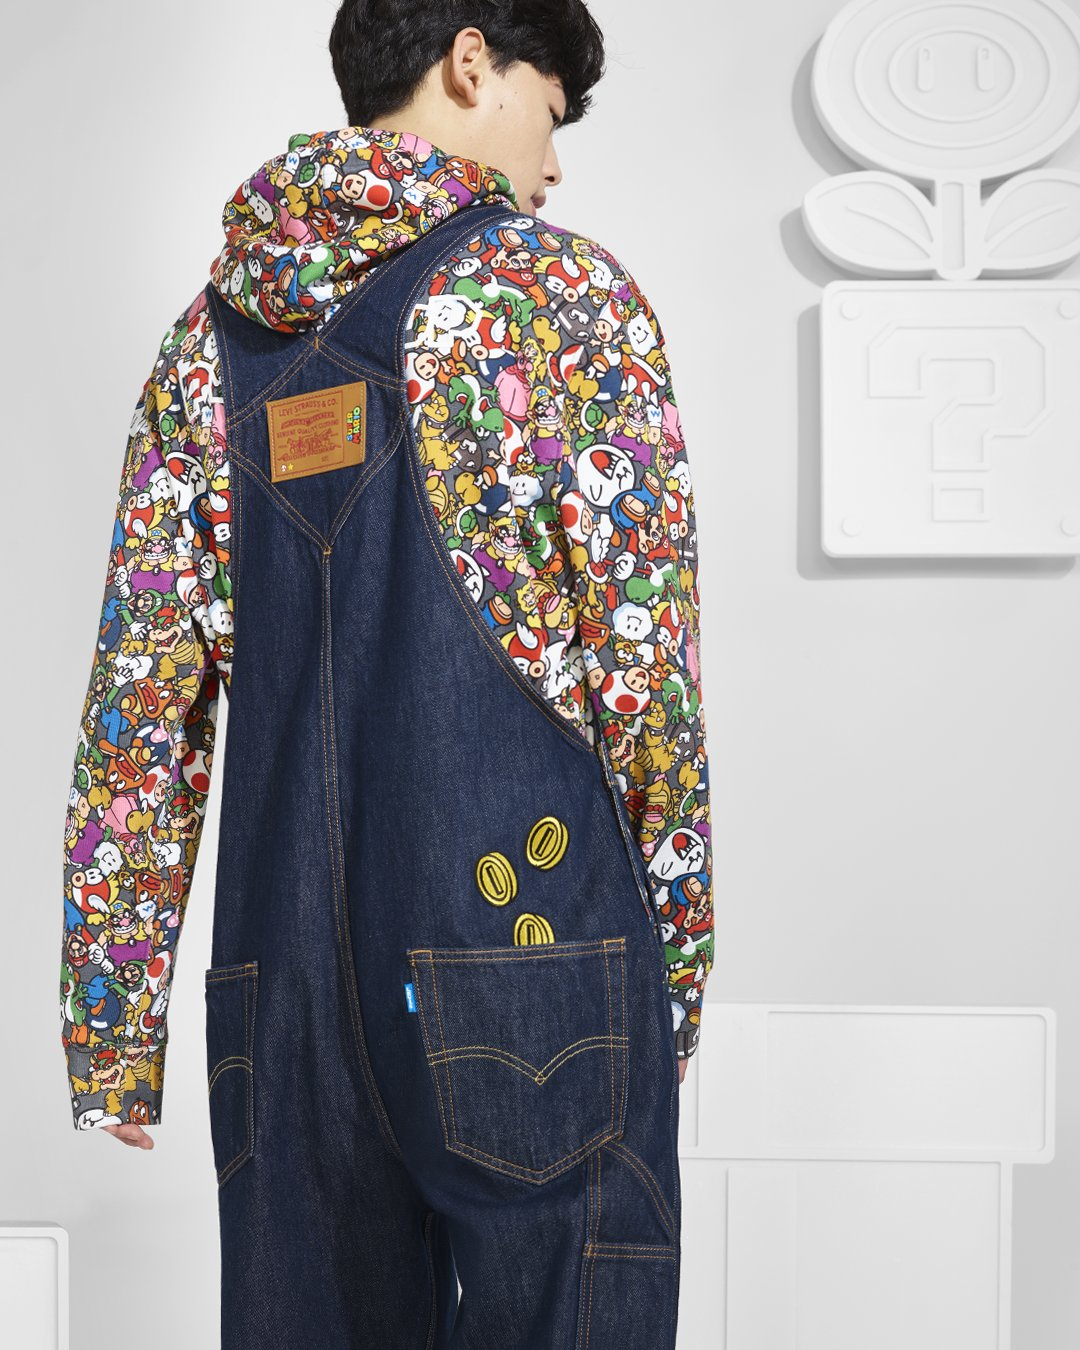 Levi's Nintendo collab includes awesome Super Mario overalls 14